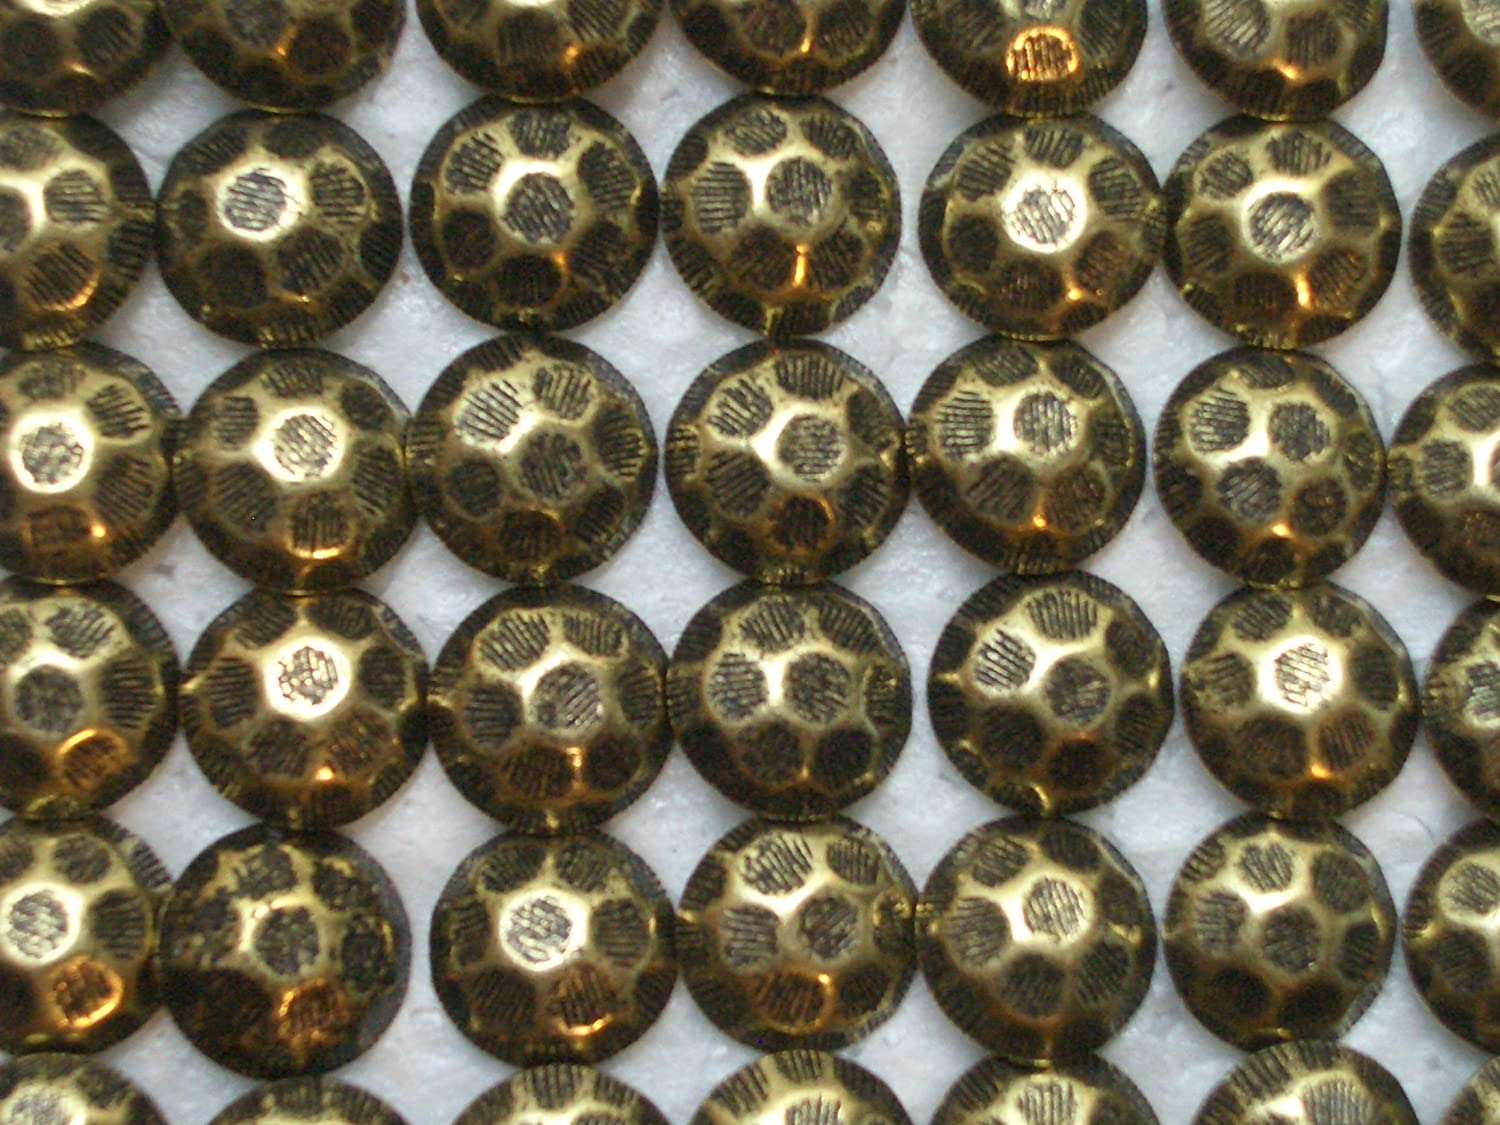 Fixed price for sale Antique New item Brass Oxford Upholstery Tacks Hammered Finish Nails 16 7